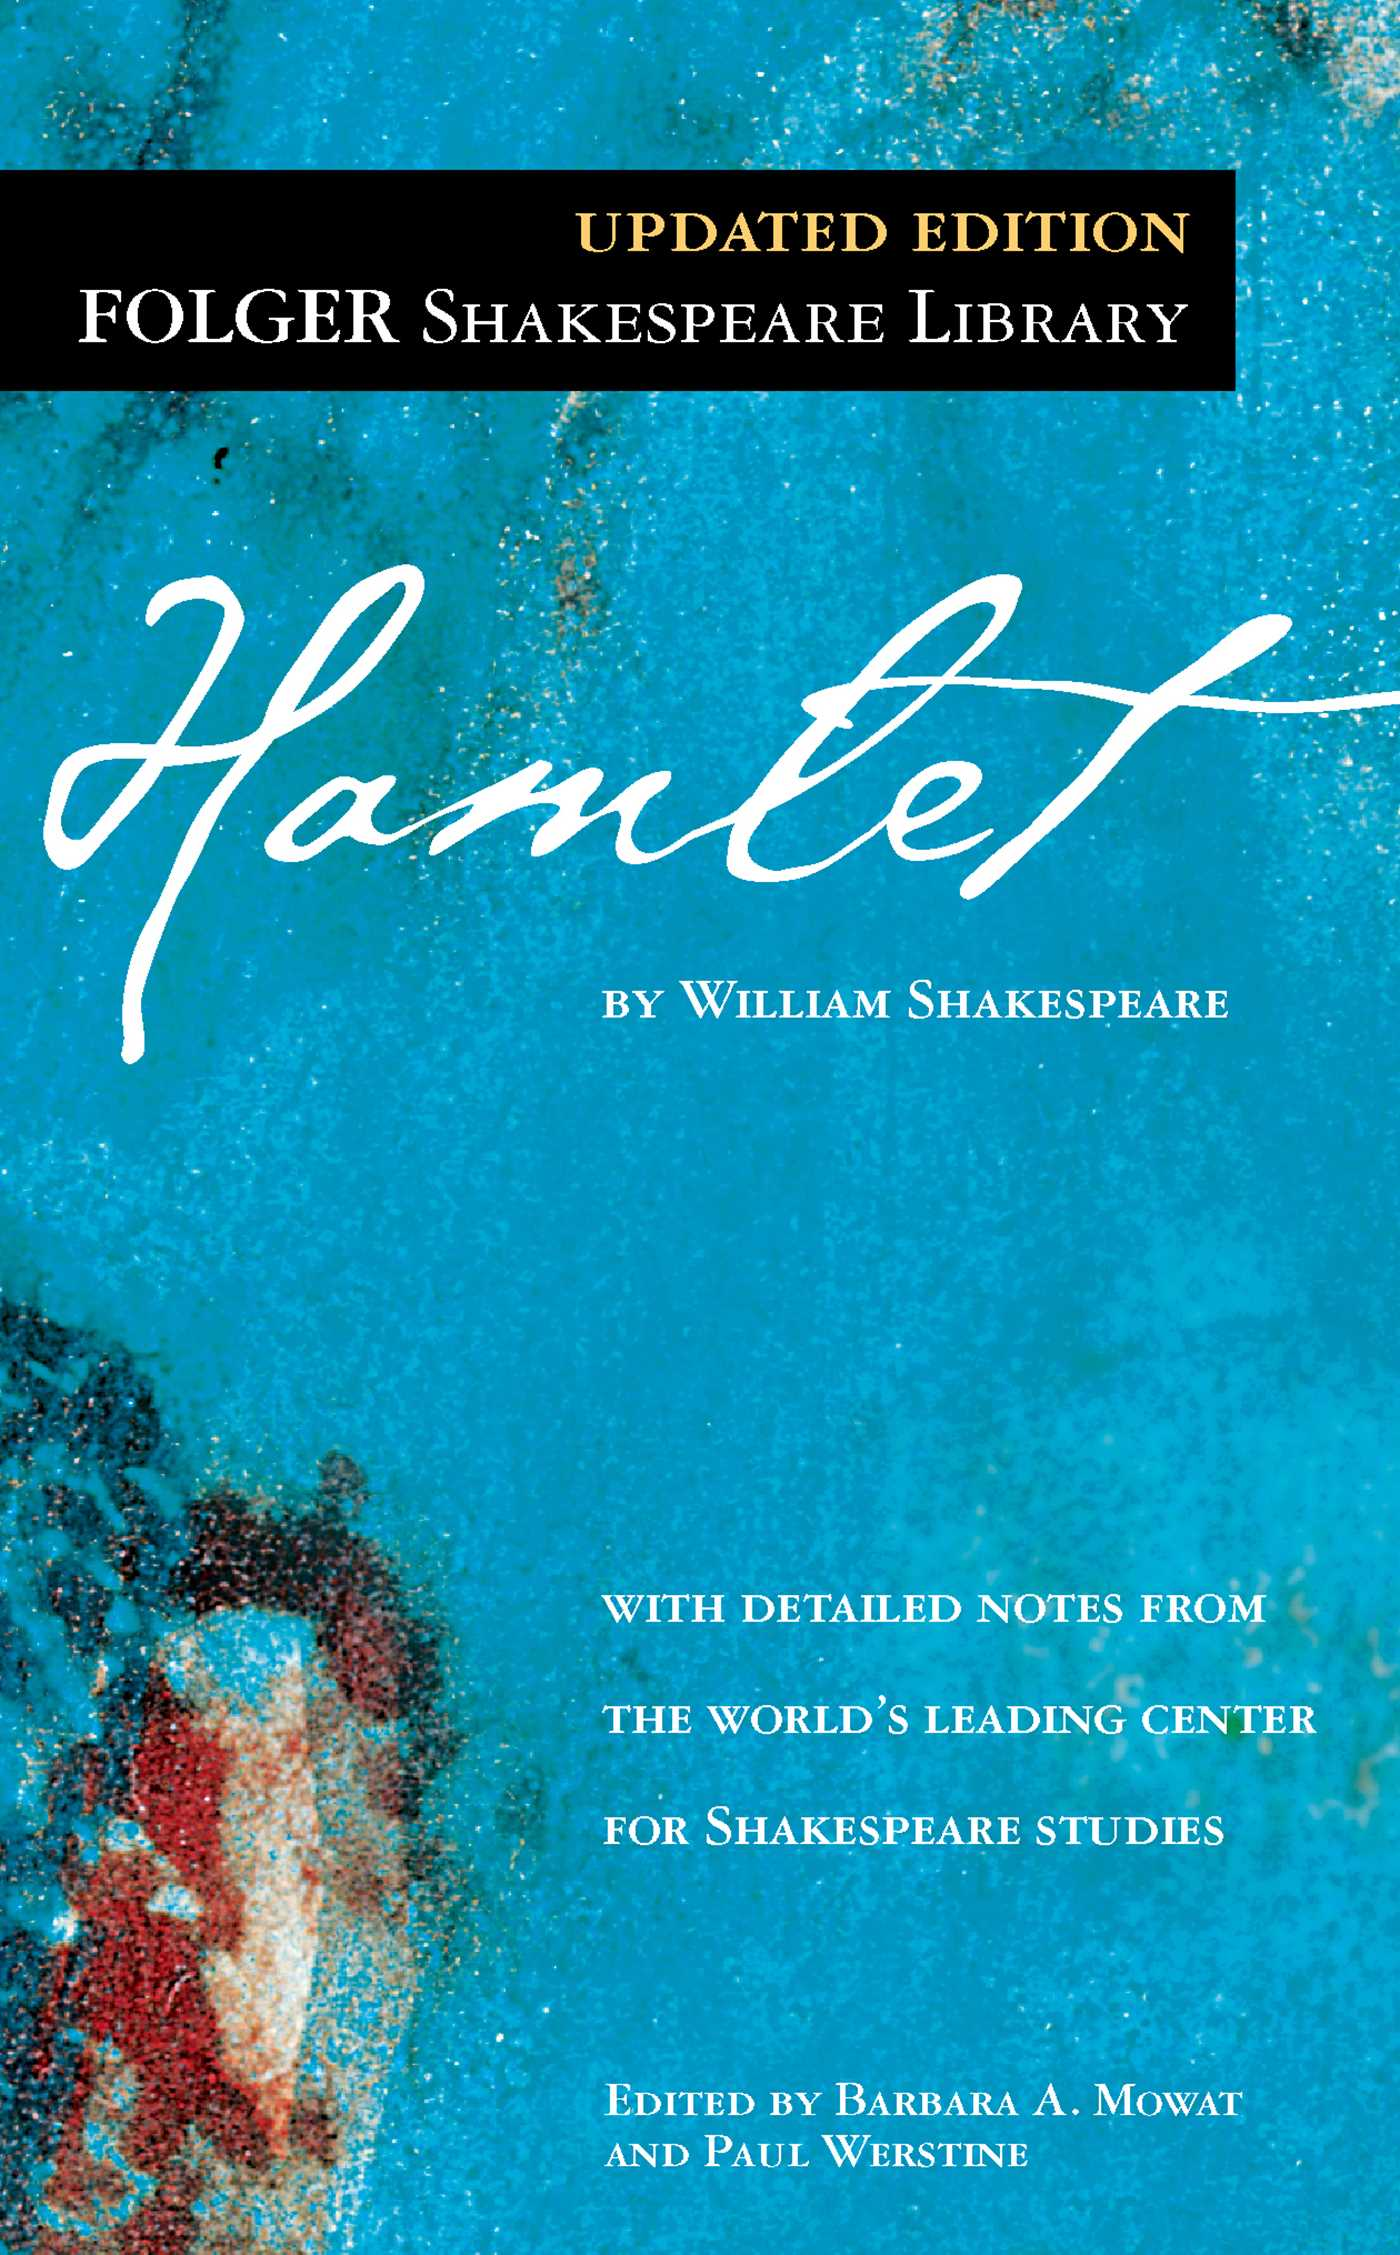 the puzzling and ambiguous persona of hamlet in shakespeares hamlet The puzzling and ambiguous persona of the main character in shakespeare's hamlet.